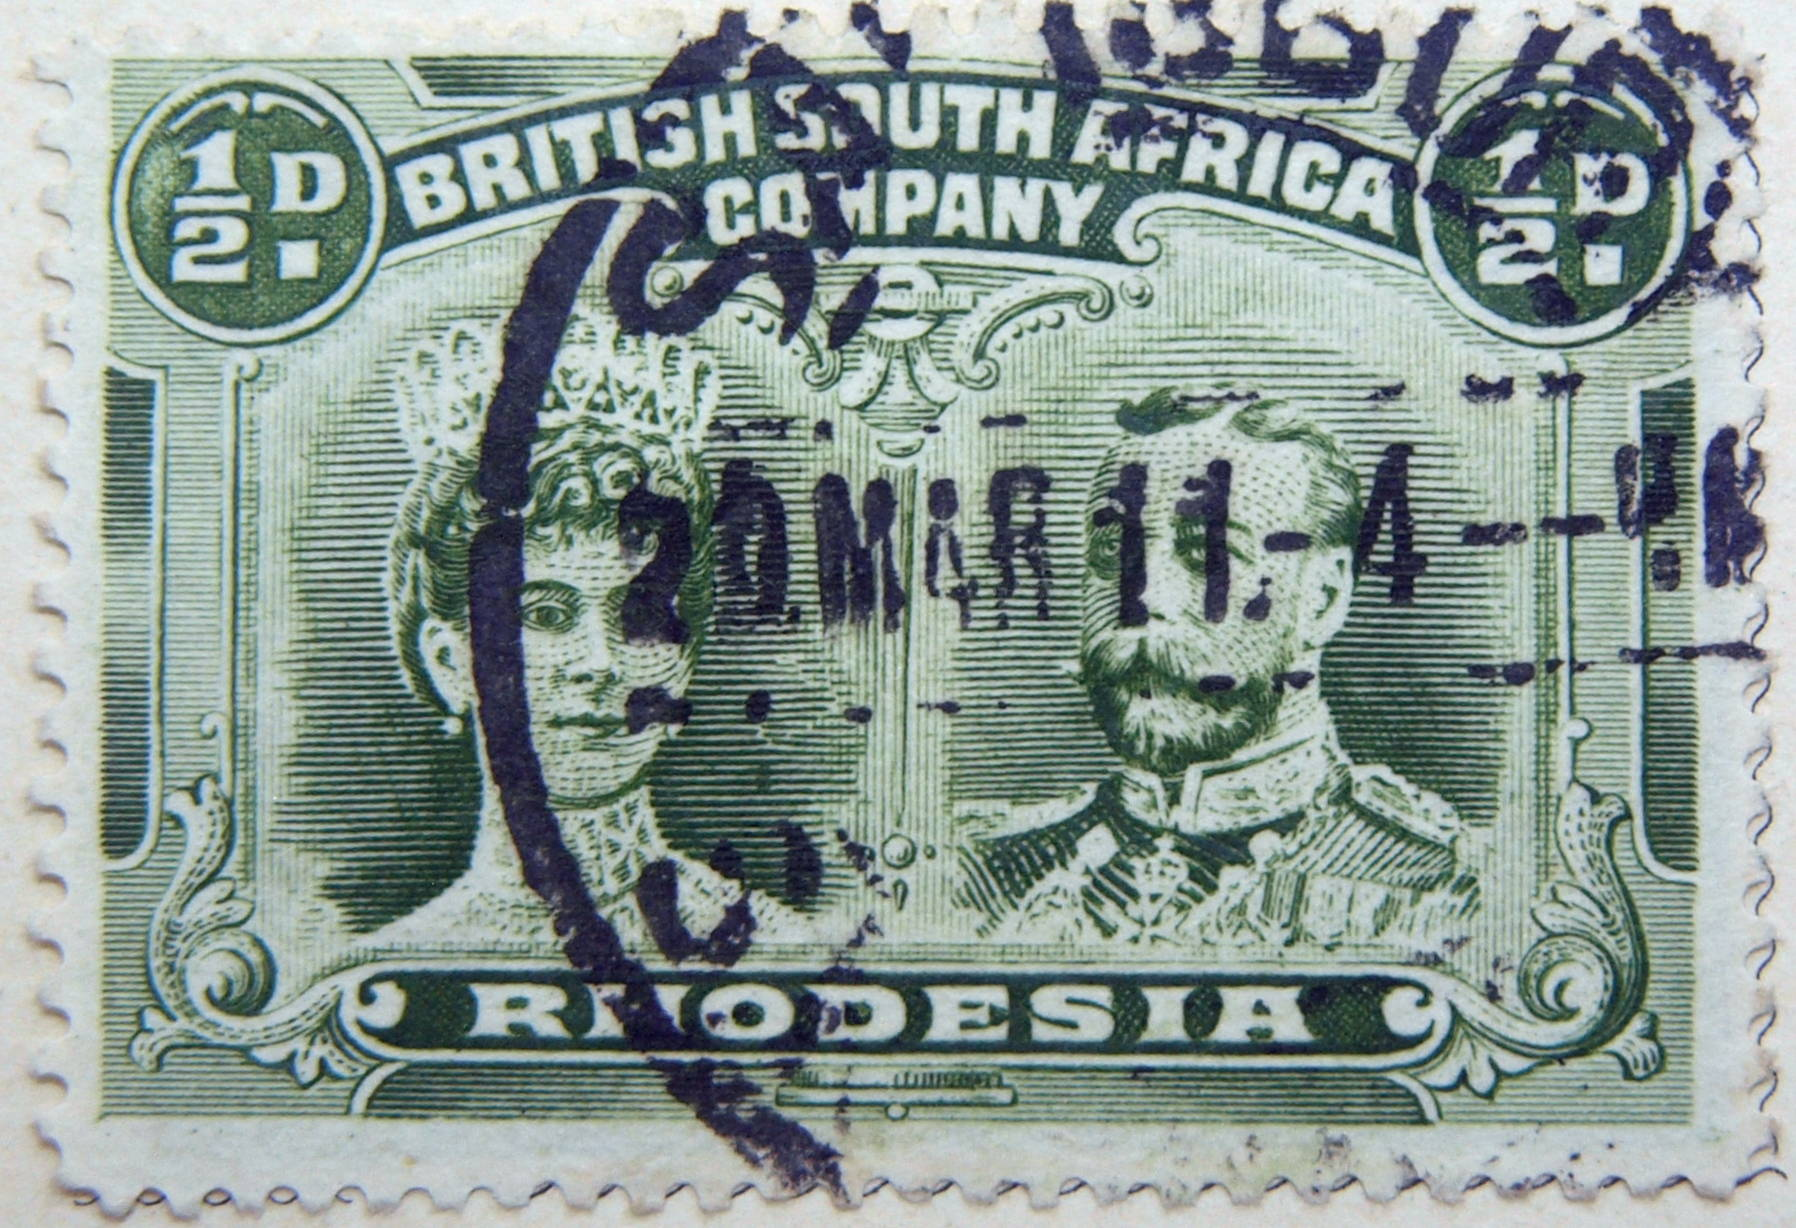 British South Africa company stamps